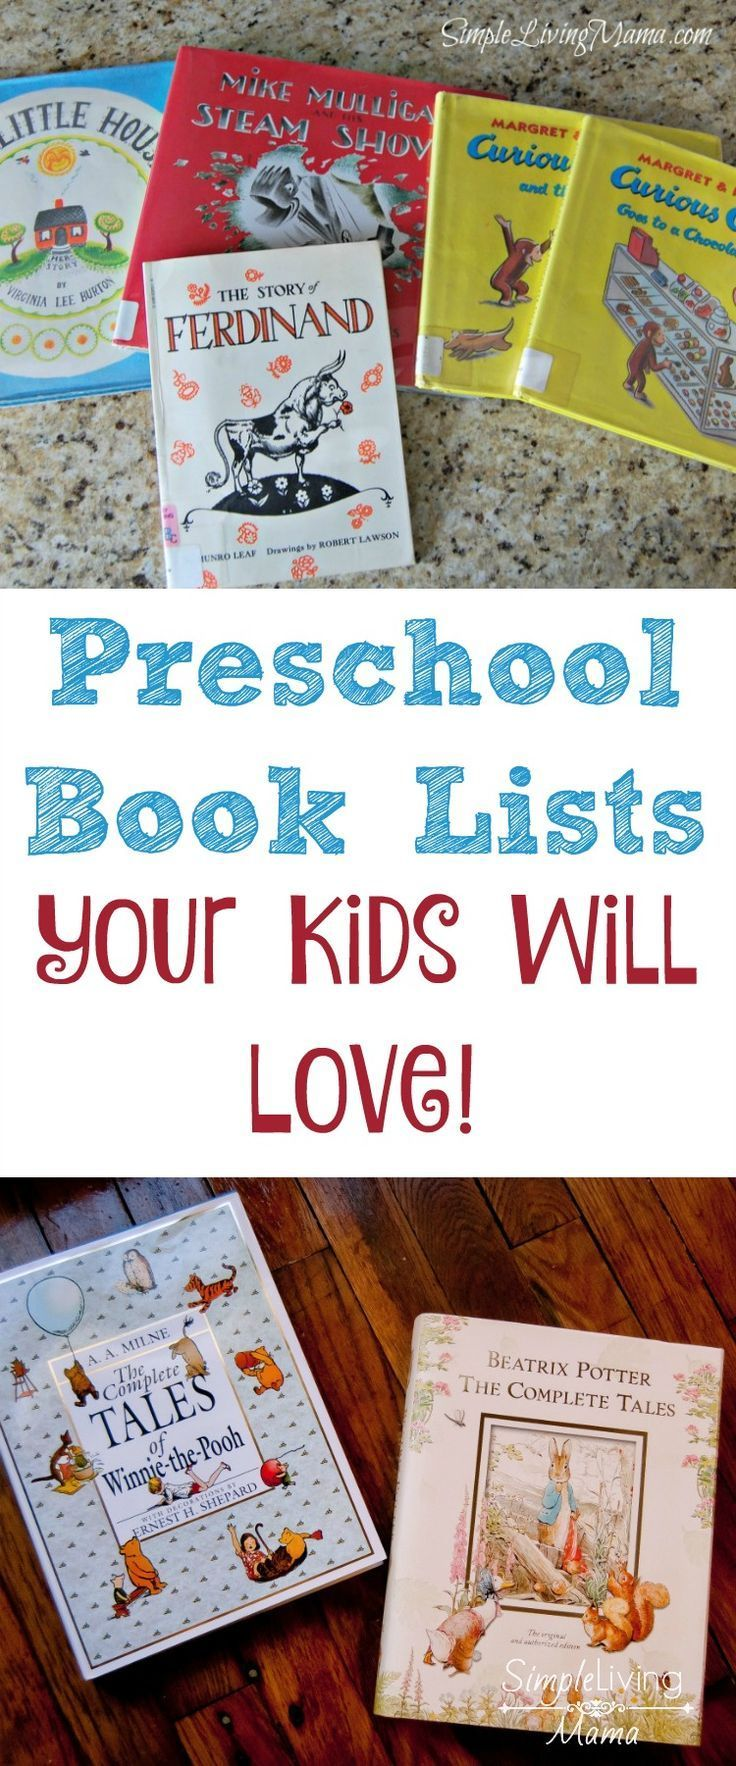 These preschool book lists will give you some amazing ideas for books to read to your preschooler. Give your child a whole new world through books!